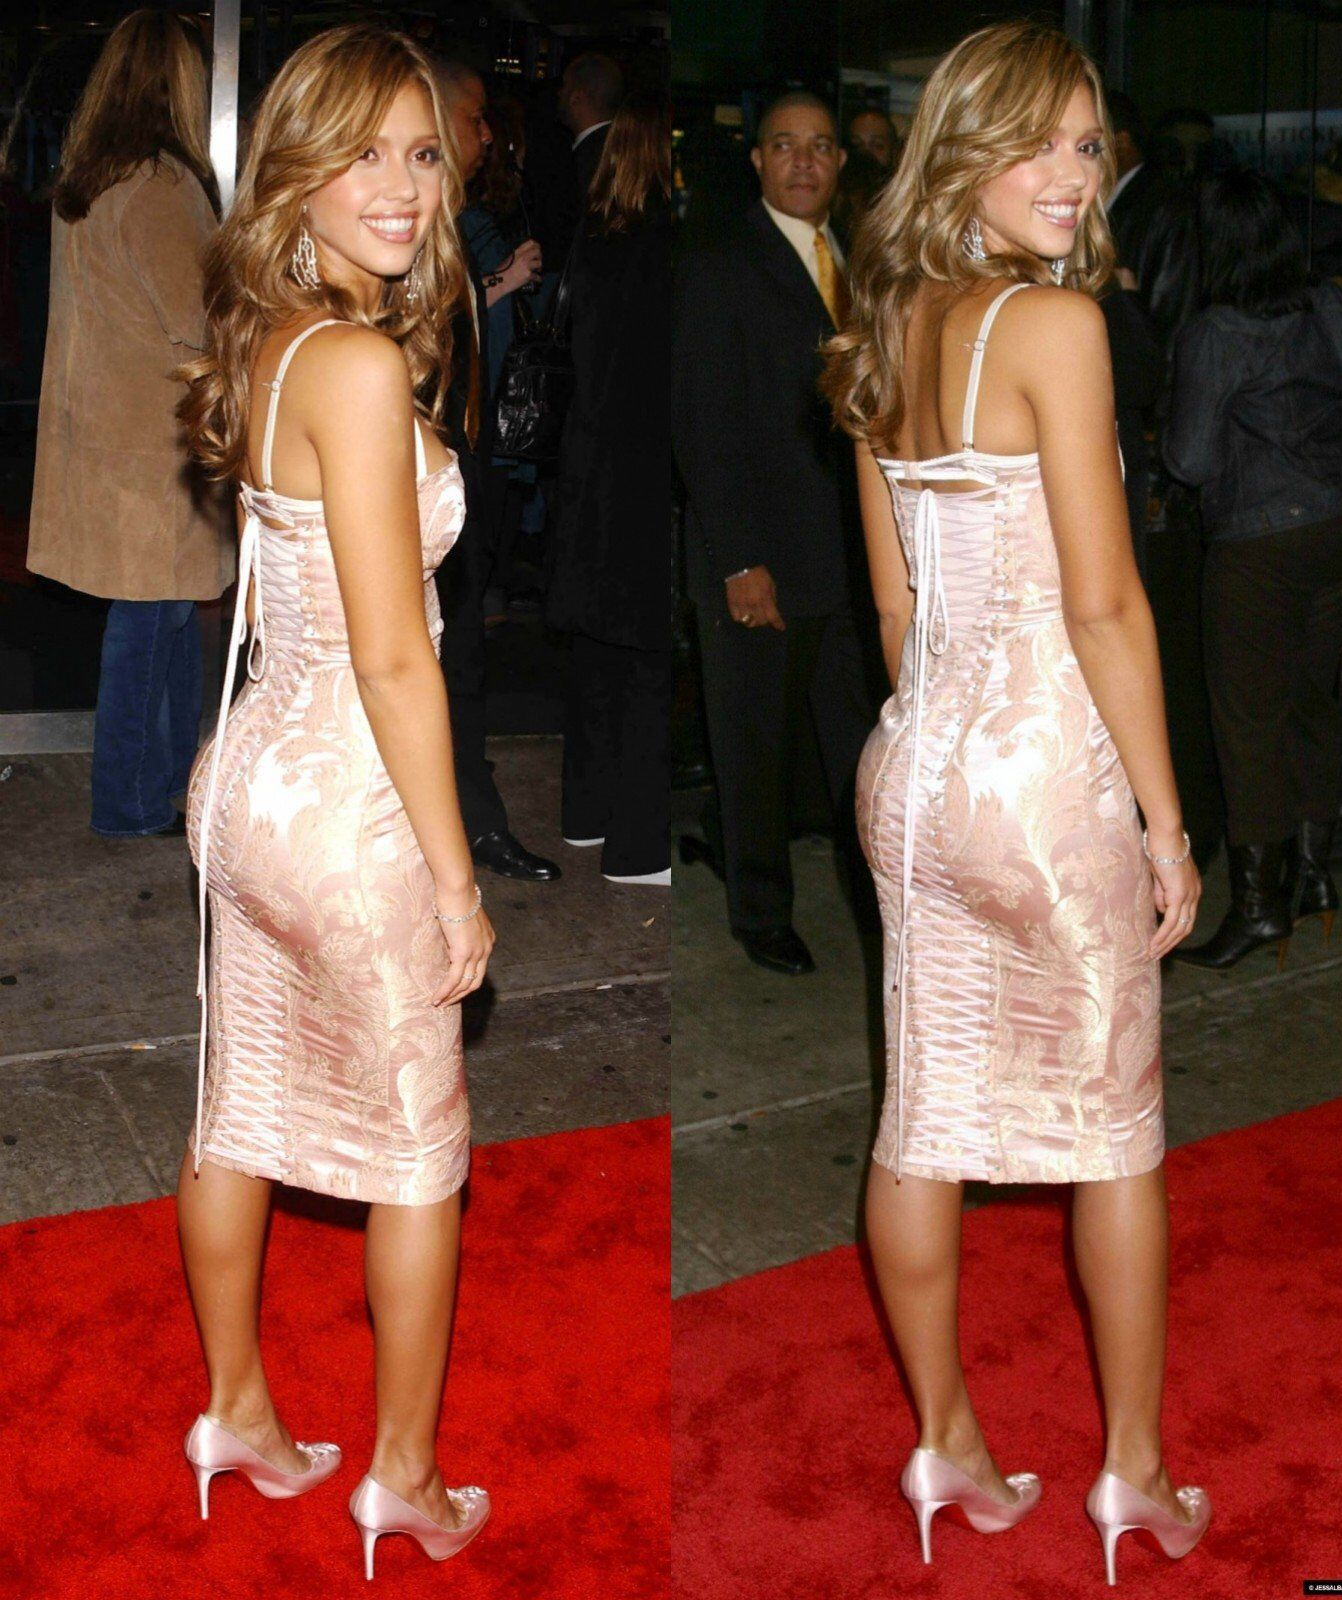 Pin by Lewis James on Jessica Alba   Girl celebrities, Jessica alba dress, Jessica alba